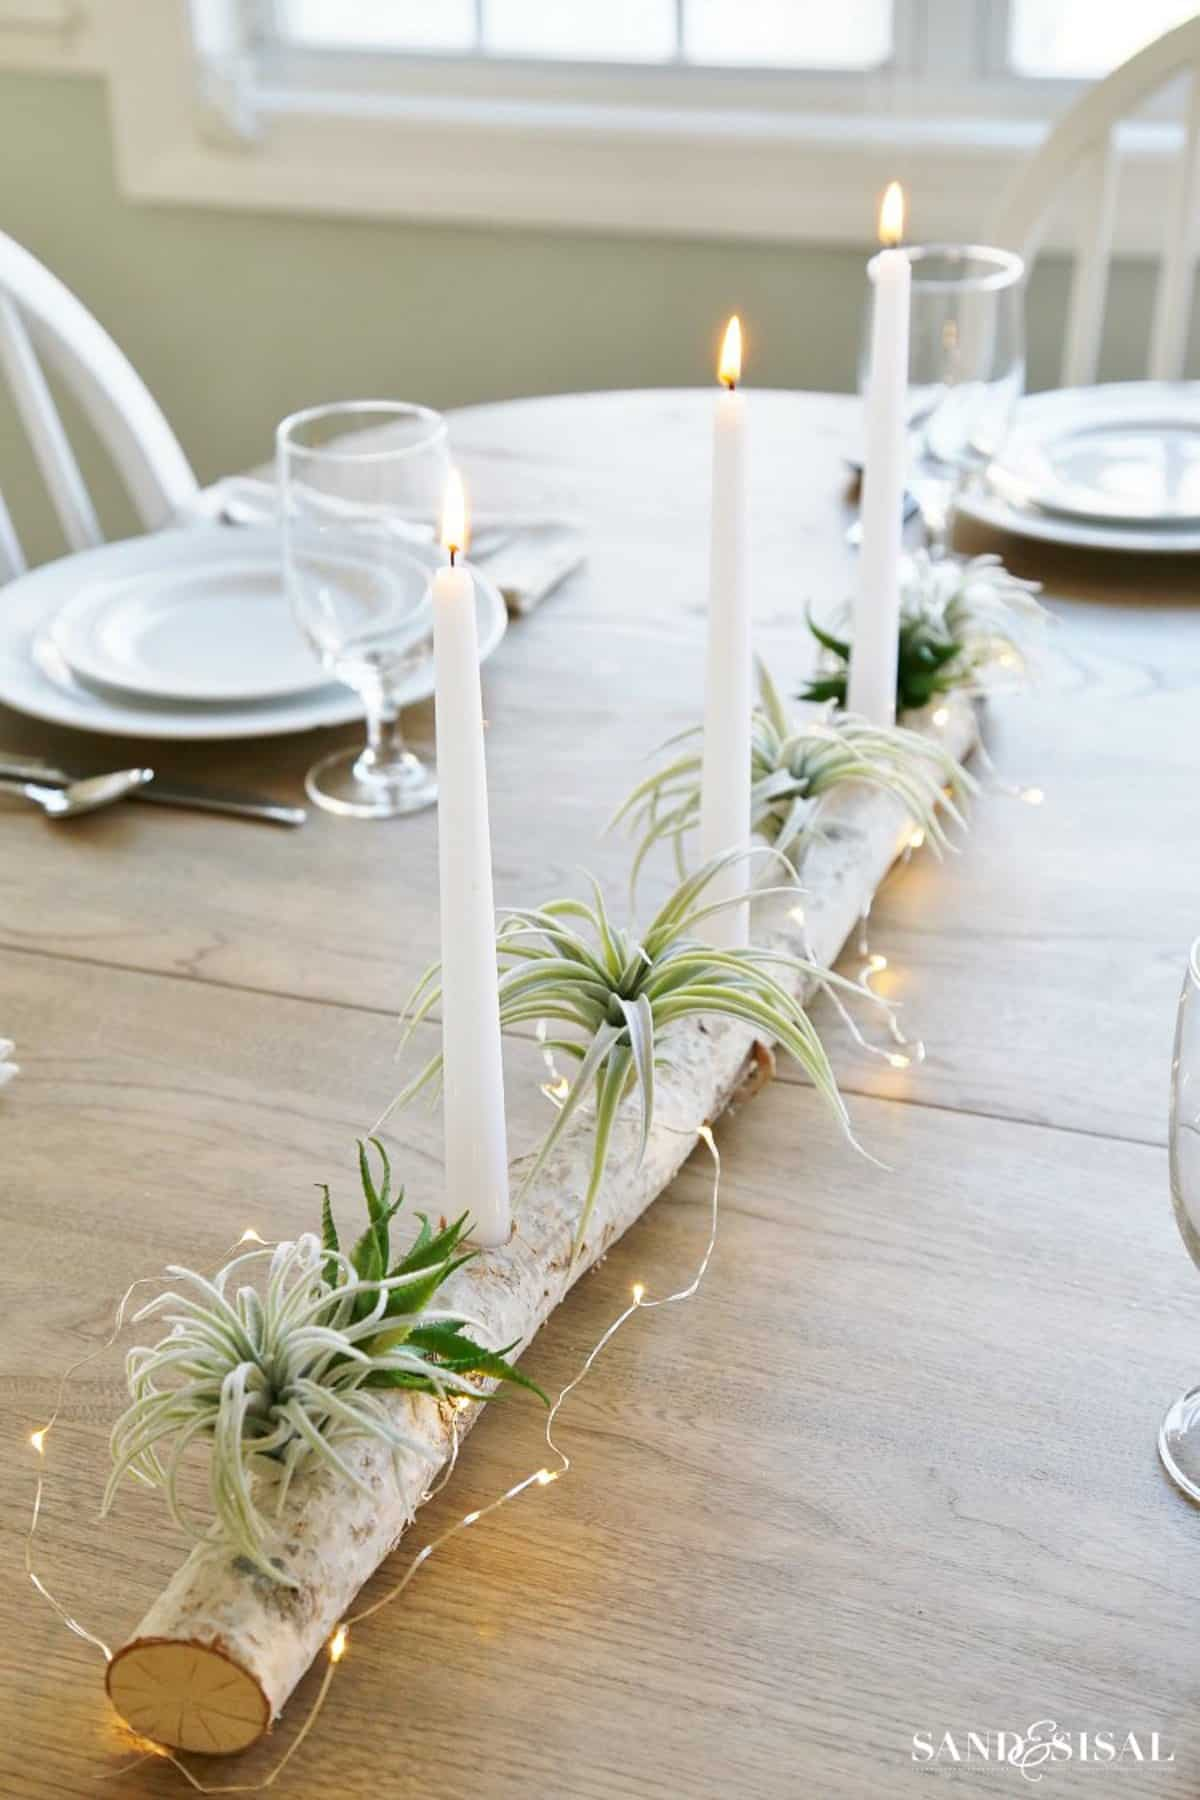 20 Inspiring Diy Candle Holders Ideas To Enhance Your Place